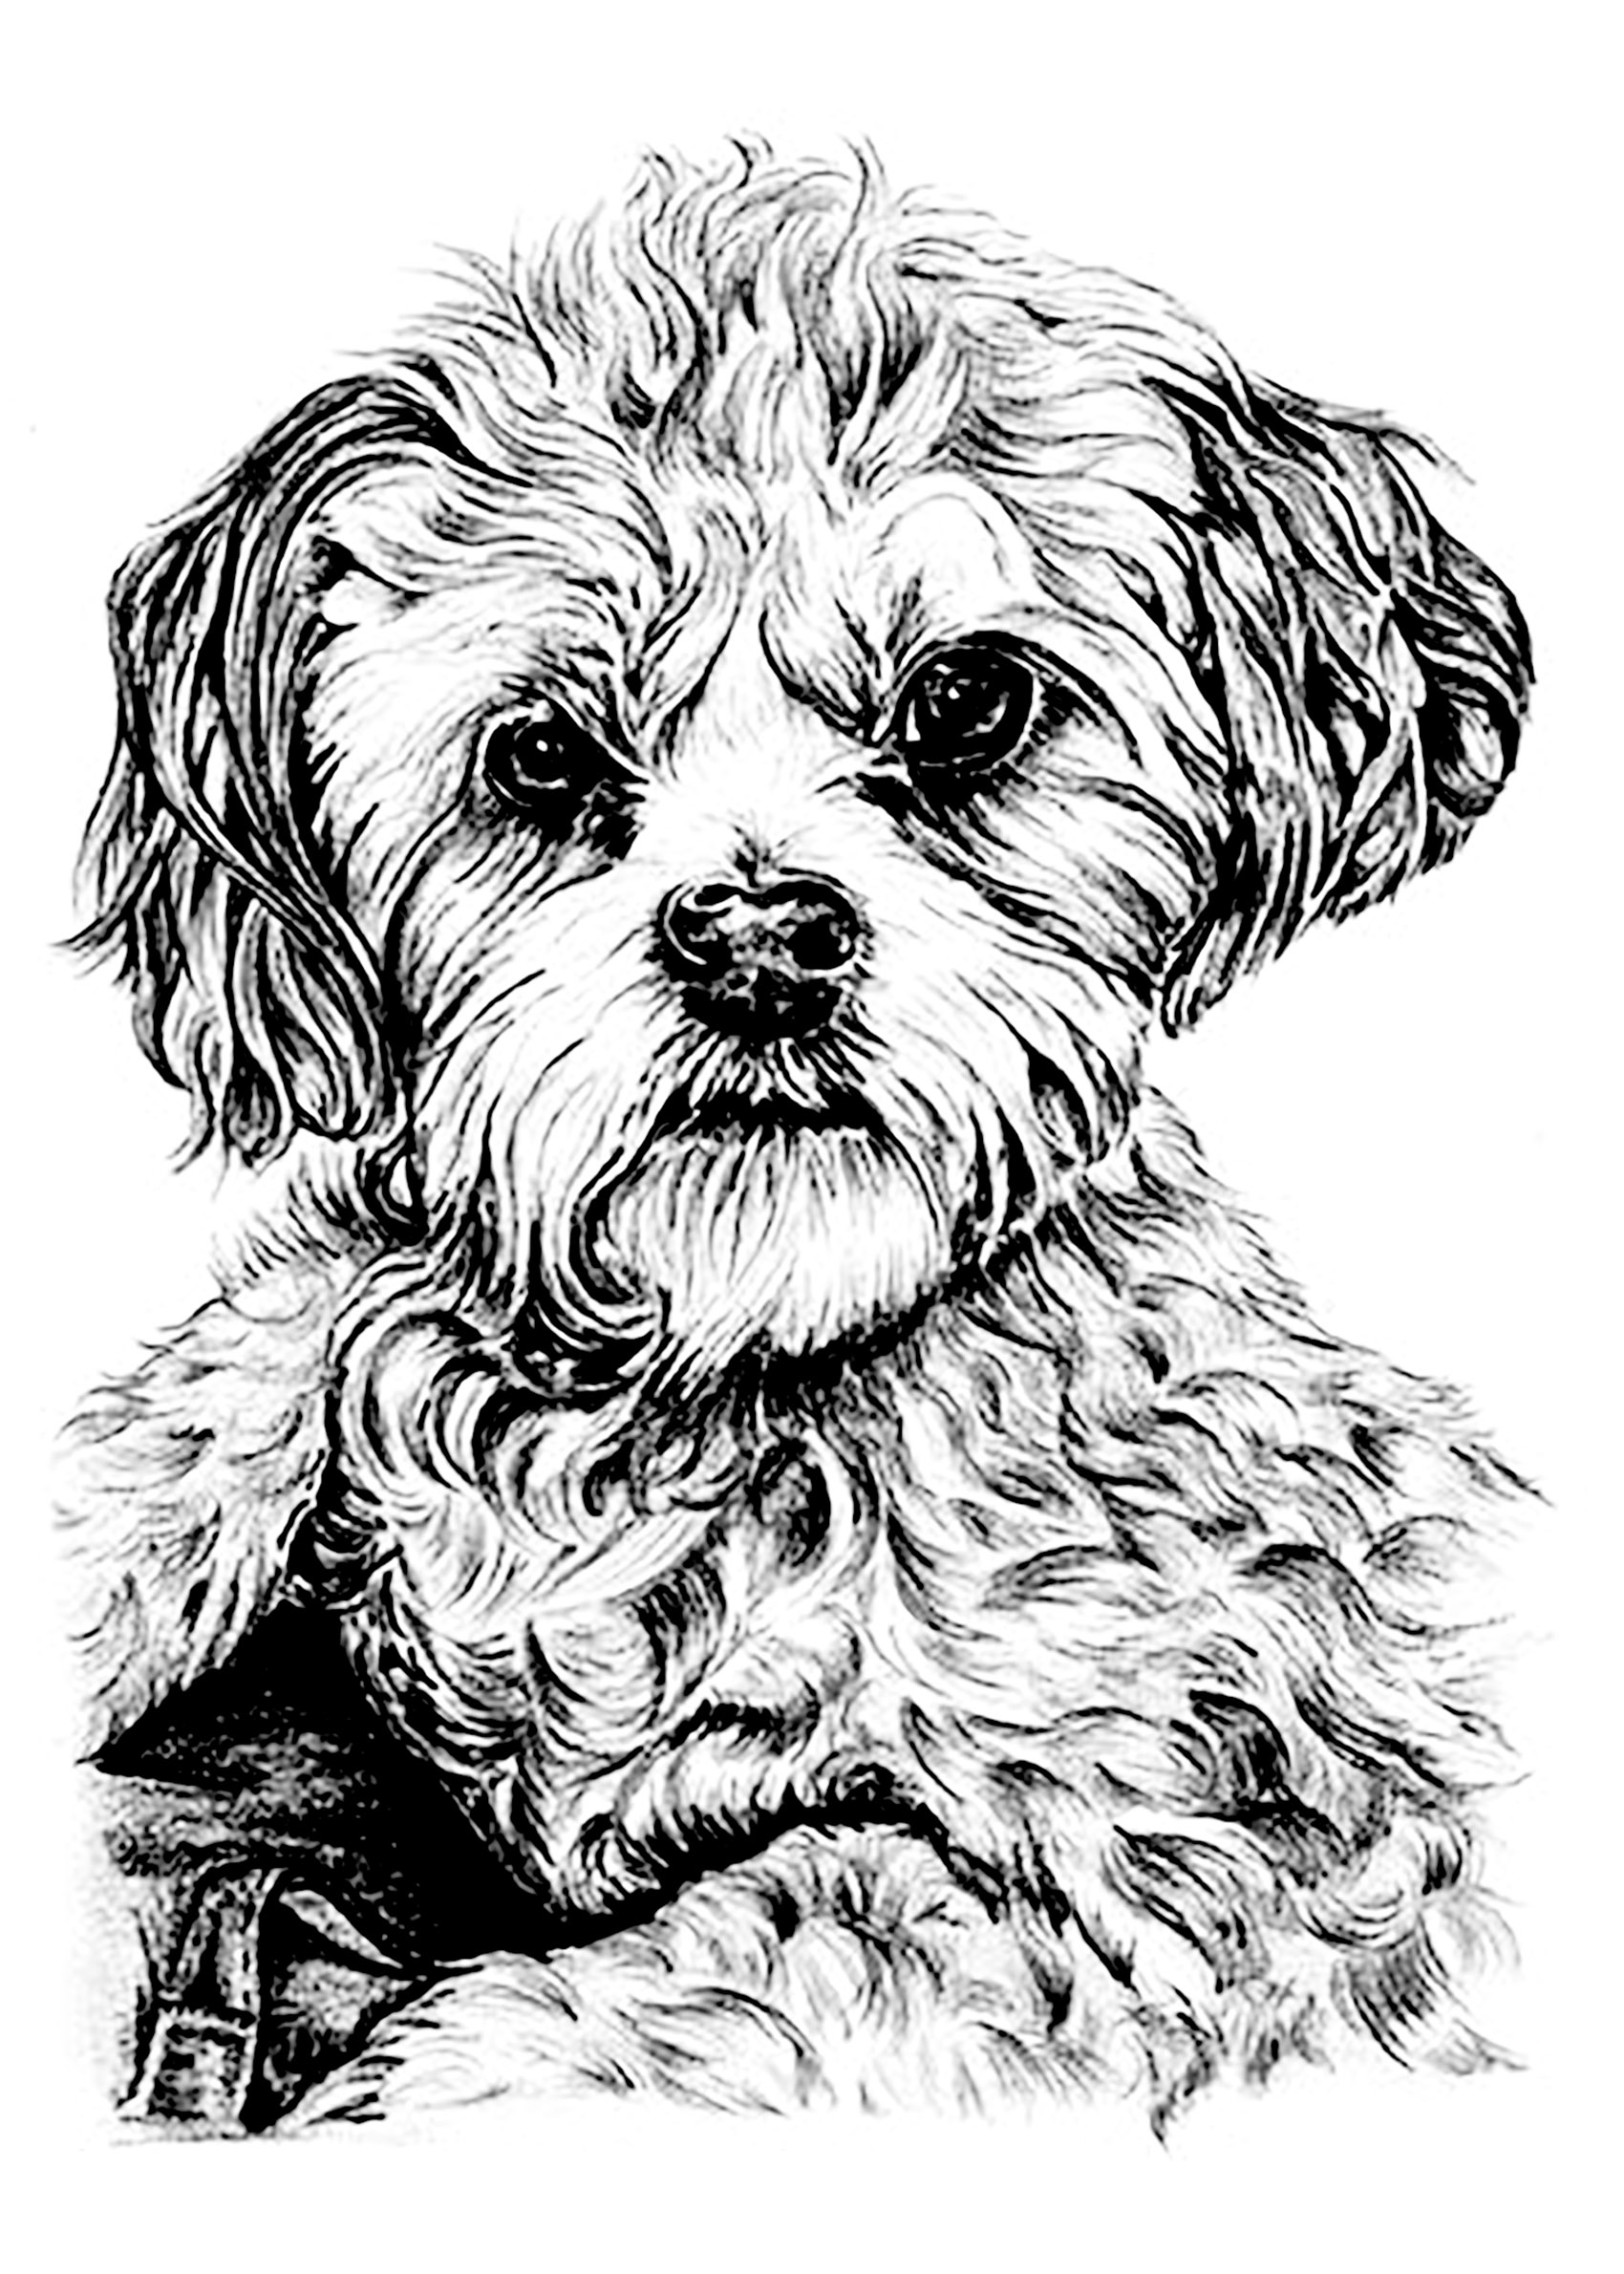 coloring pages for adults dogs dog head bimdeedee dogs adult coloring pages pages adults coloring for dogs